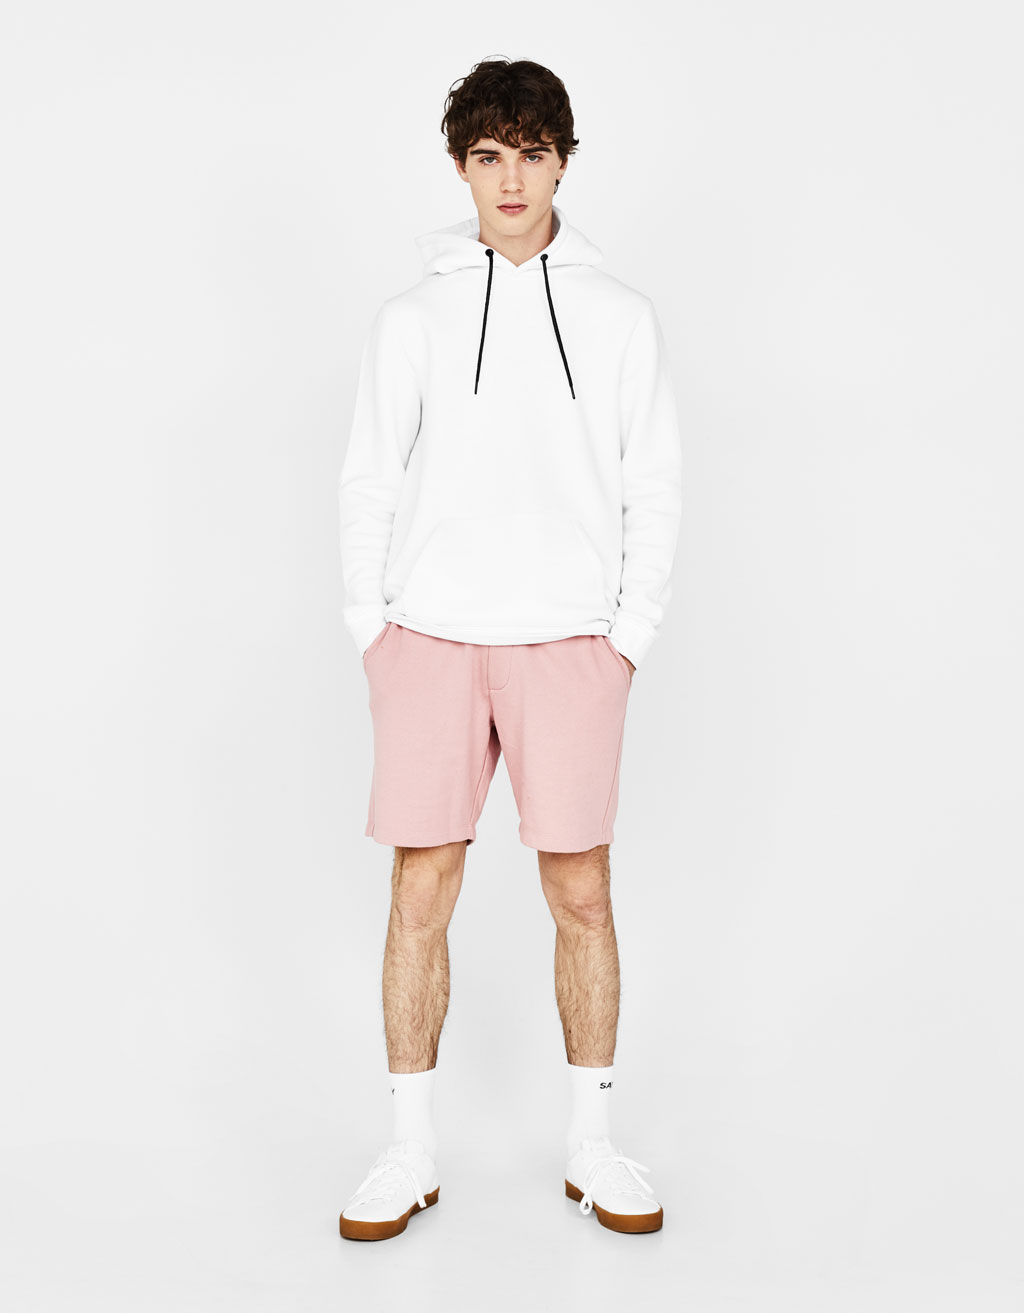 Sports bermuda shorts